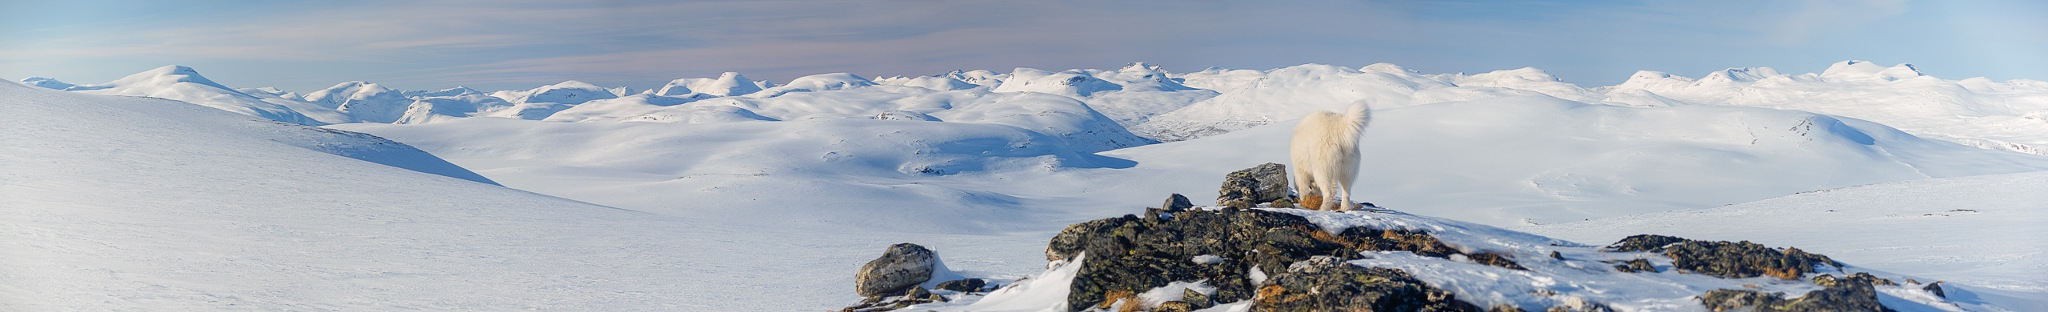 Norwegian mountain panorama by geirole